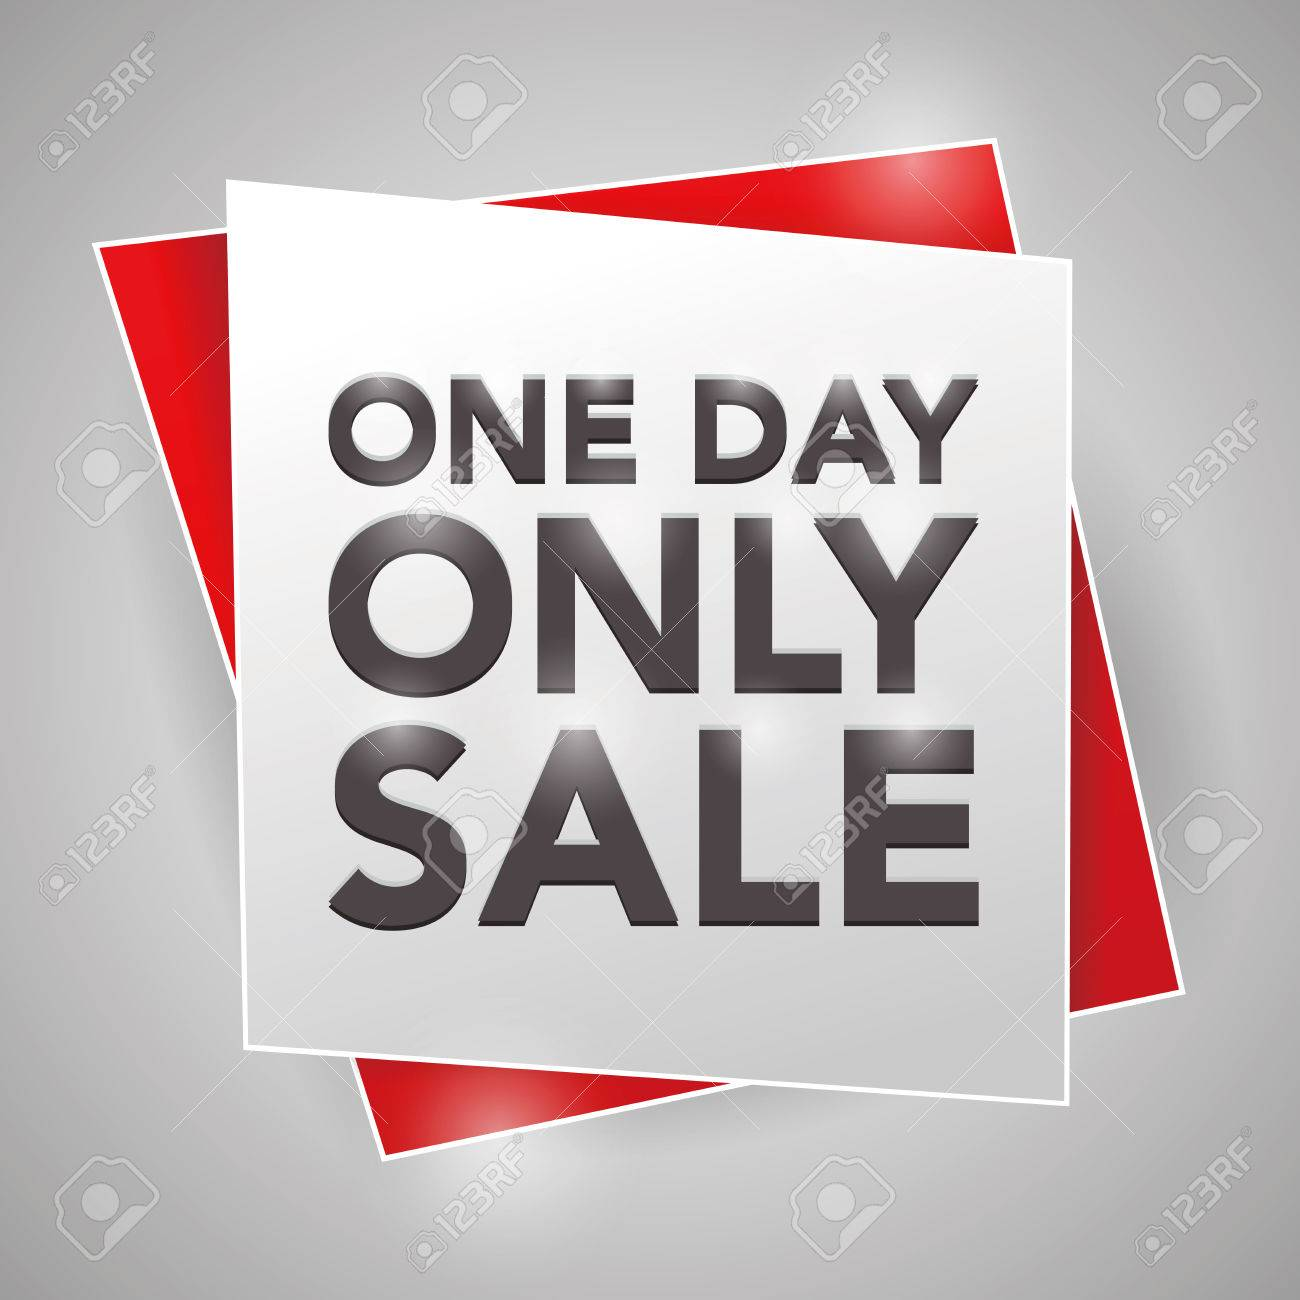 ONE DAY ONLY SALE , poster design element - 44060658